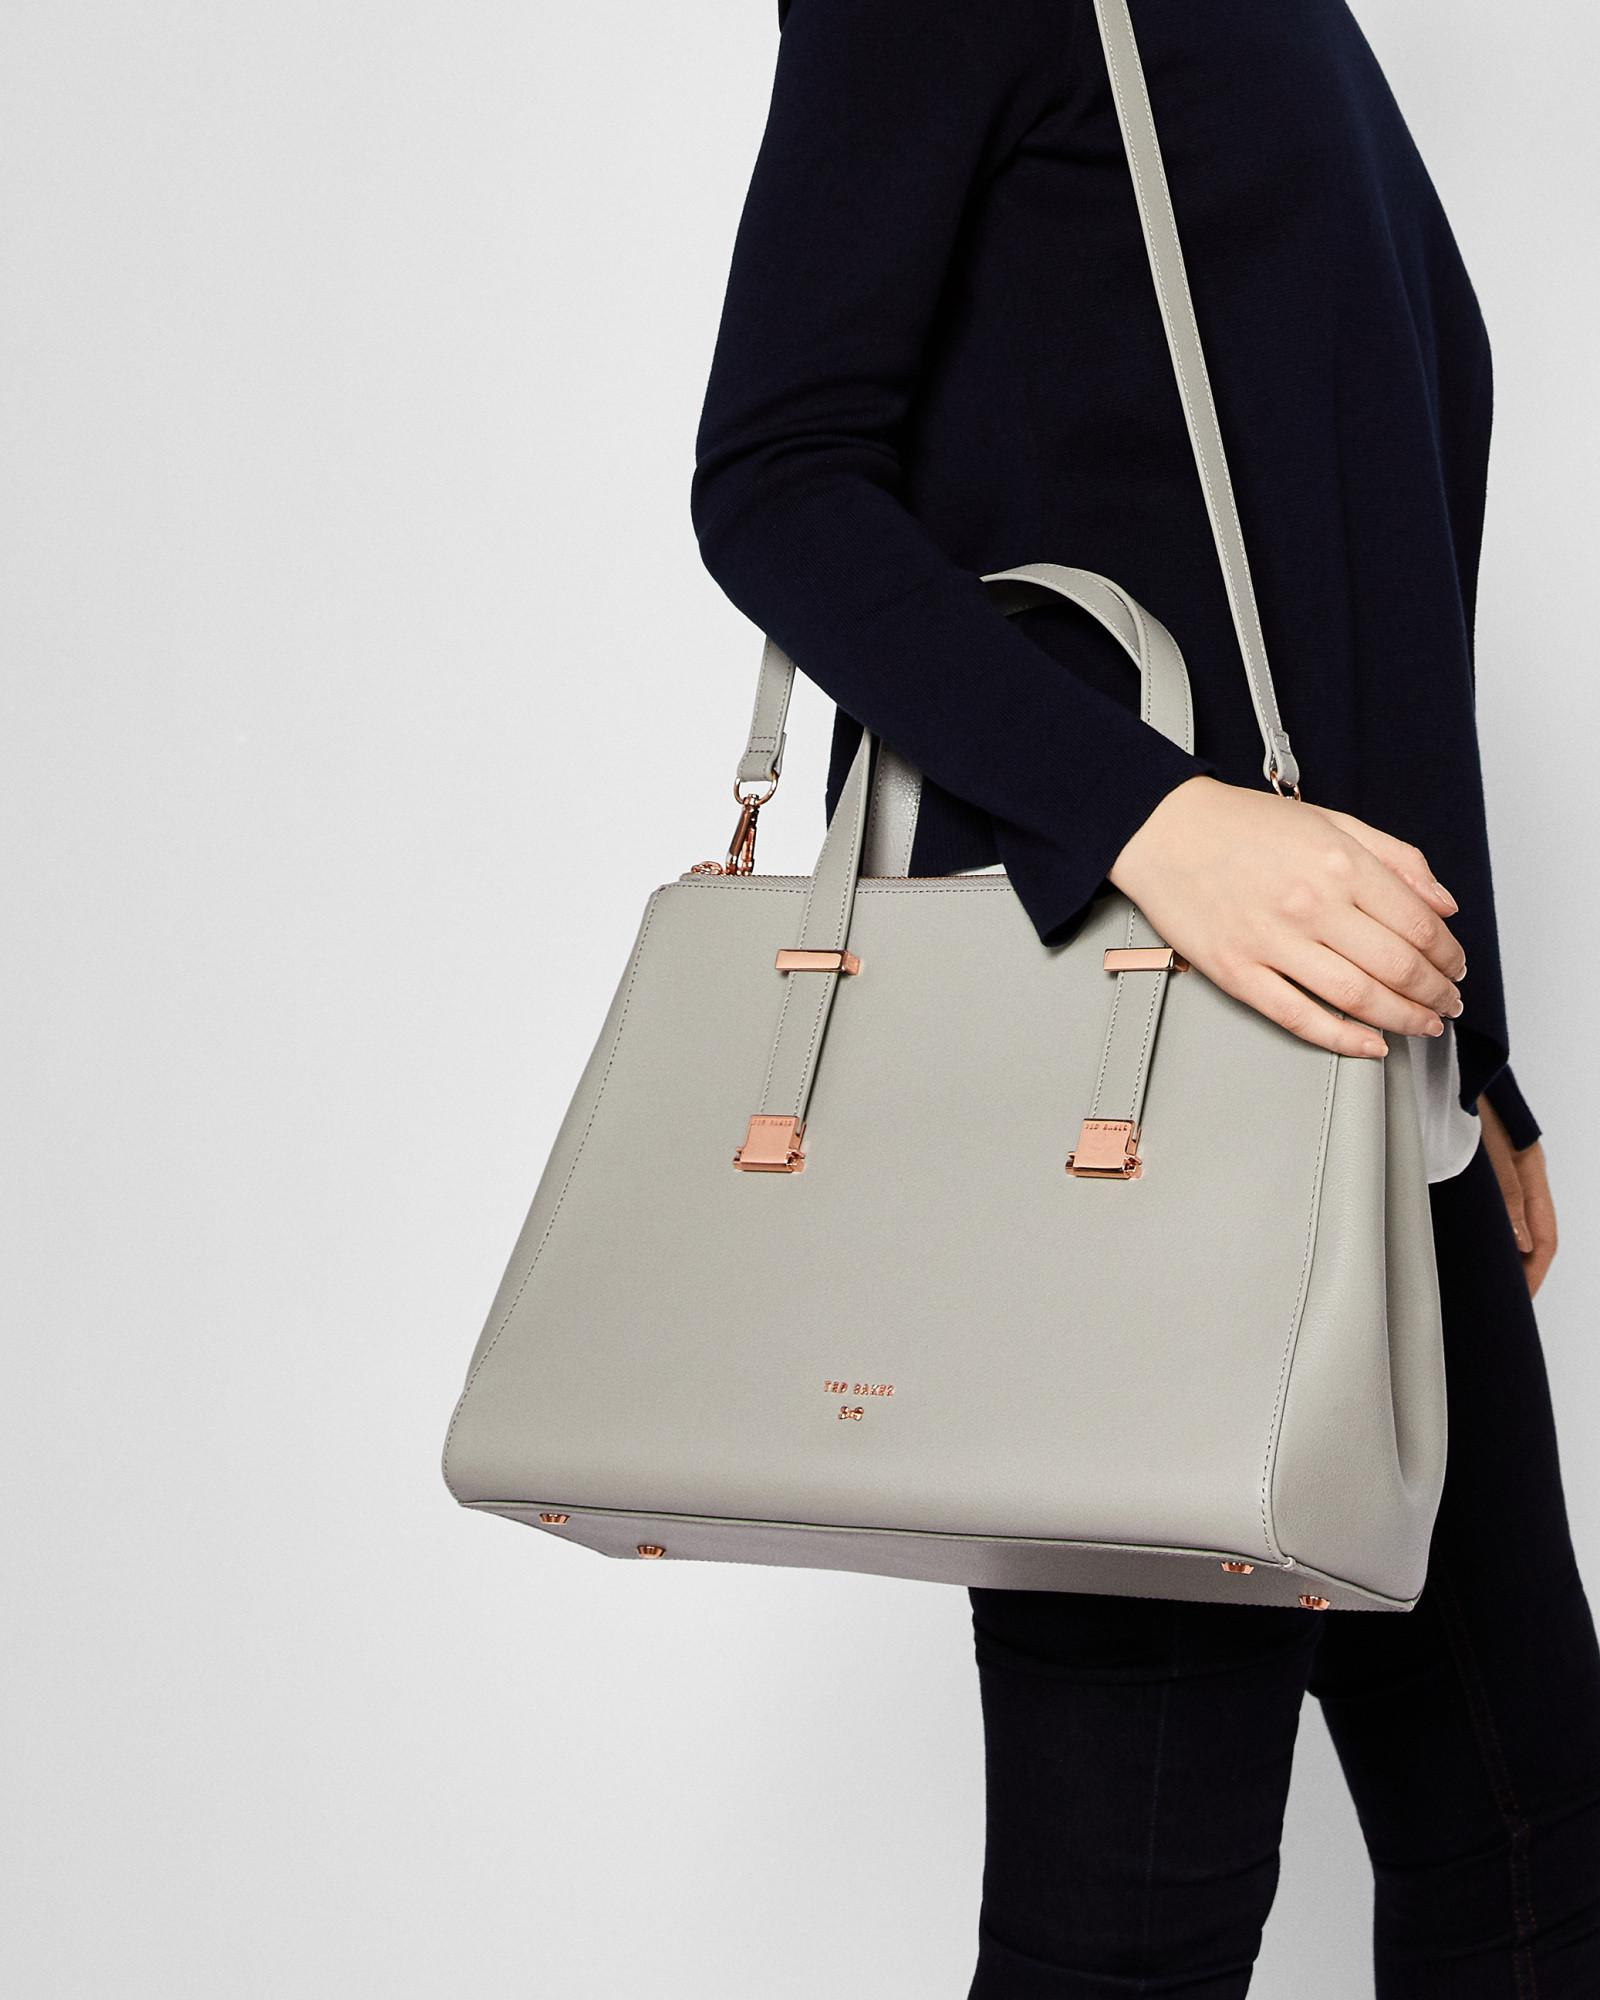 adec4d4b3569 Ted Baker Adjustable Handle Large Leather Tote Bag in Gray - Lyst